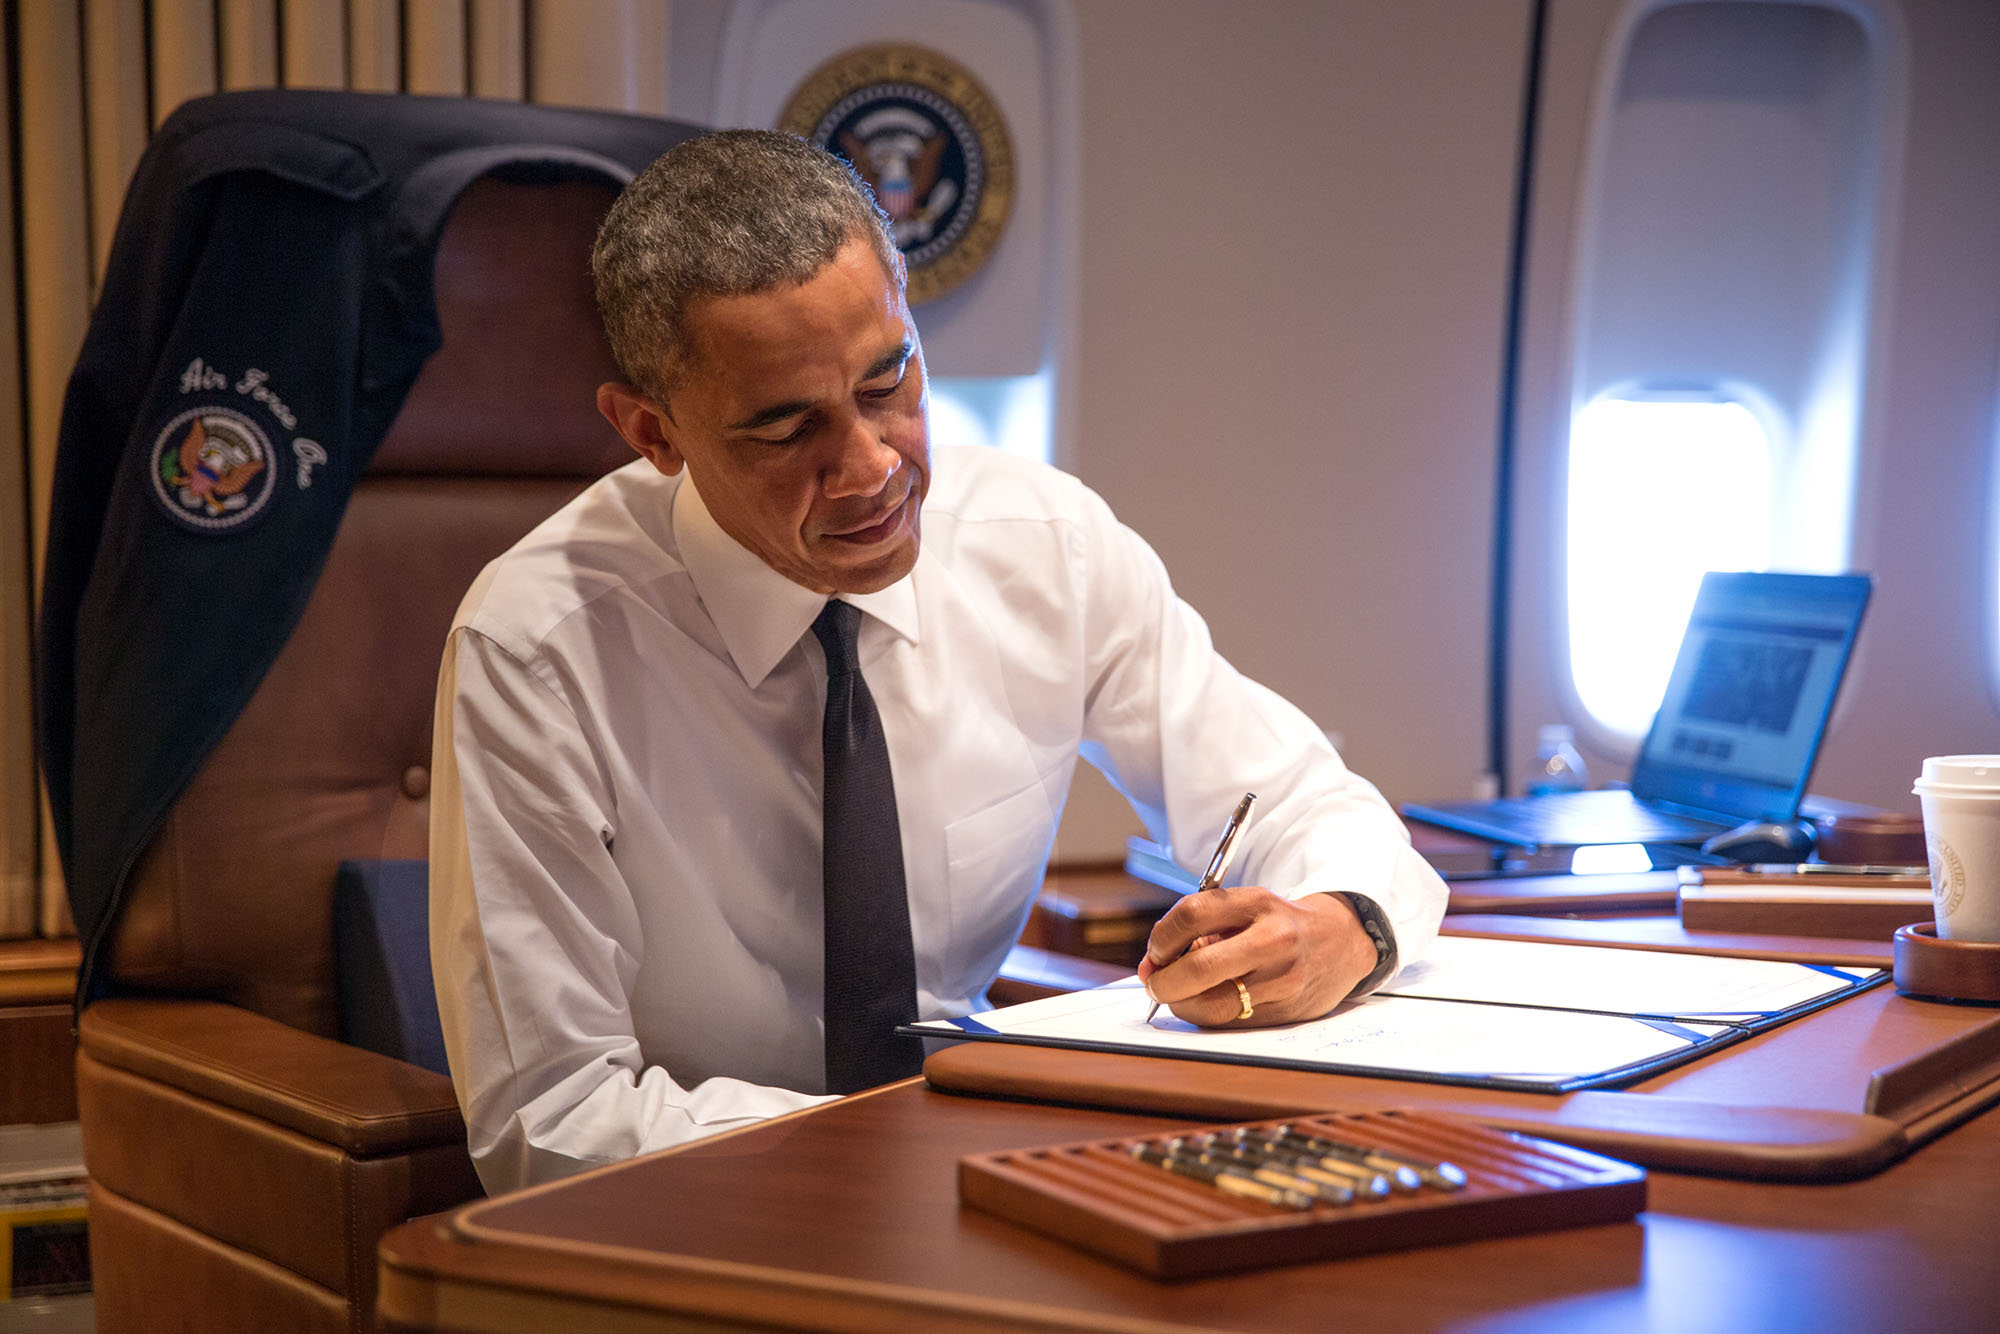 Aboard Air Force One en route to Alabama, President Obama signs H.R. 432 authorizing the Congressional Gold Medal to the